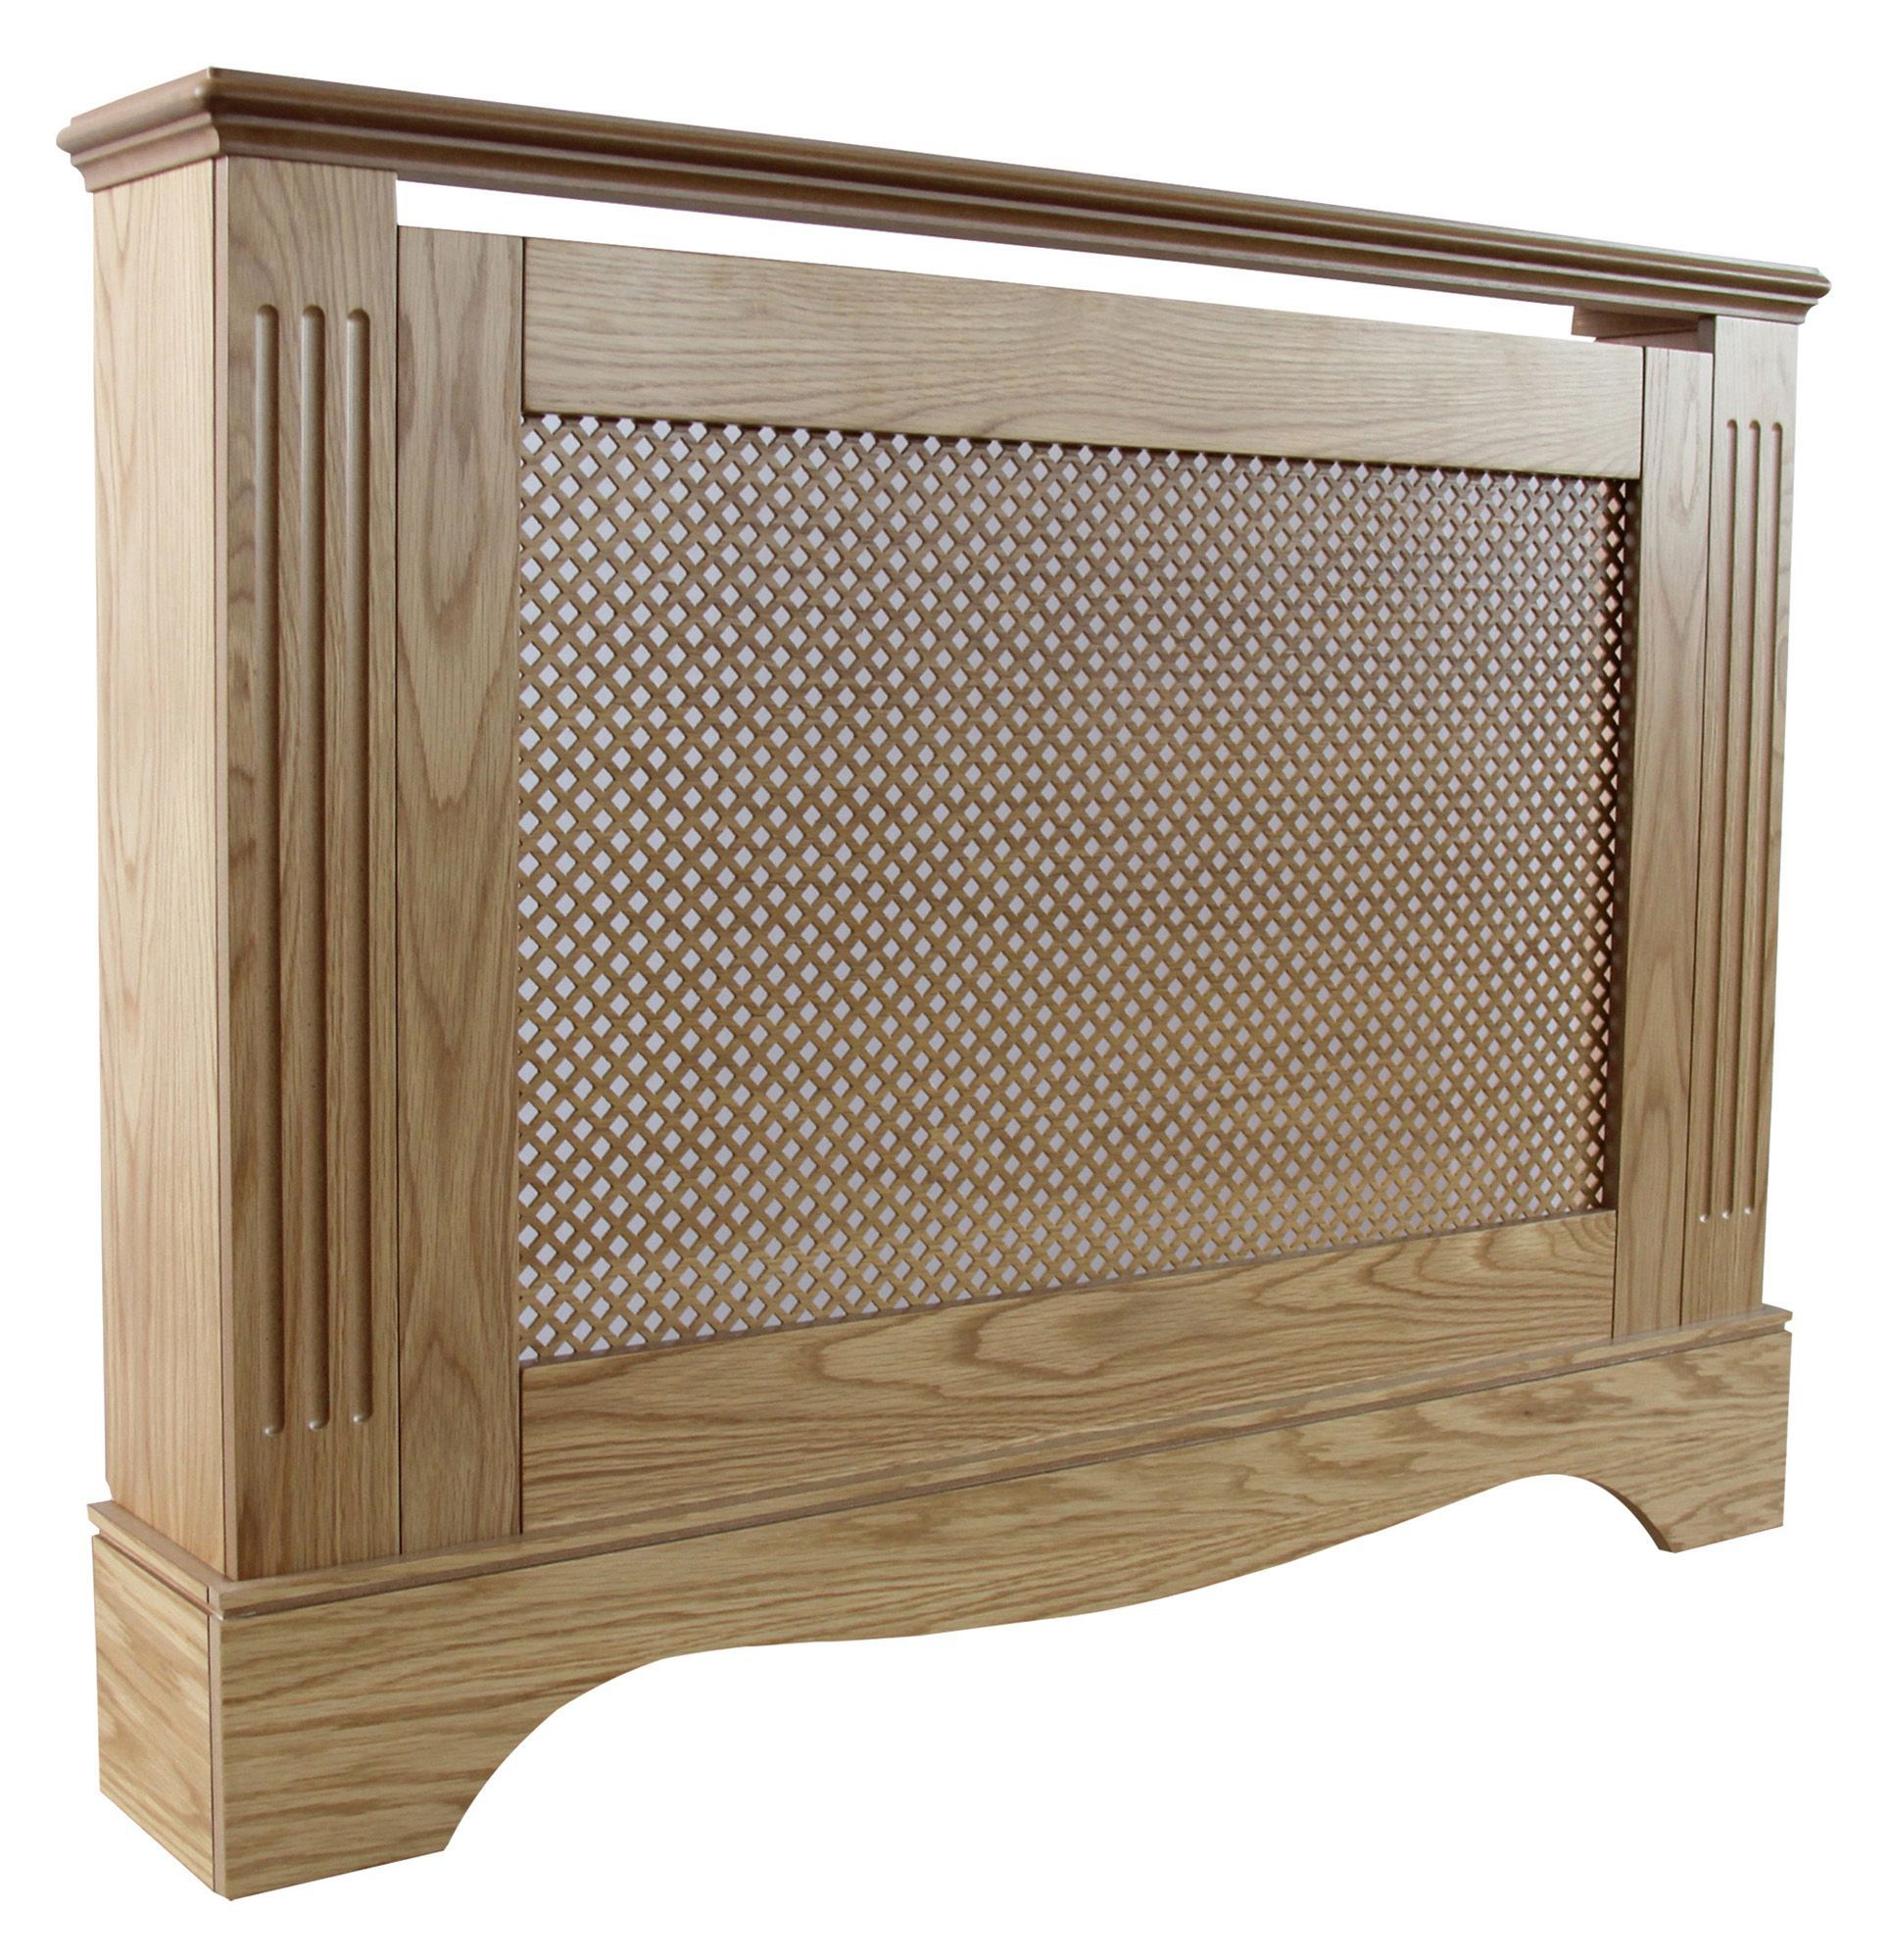 Diy At B Q: Berkshire Medium Oak Effect Radiator Cover